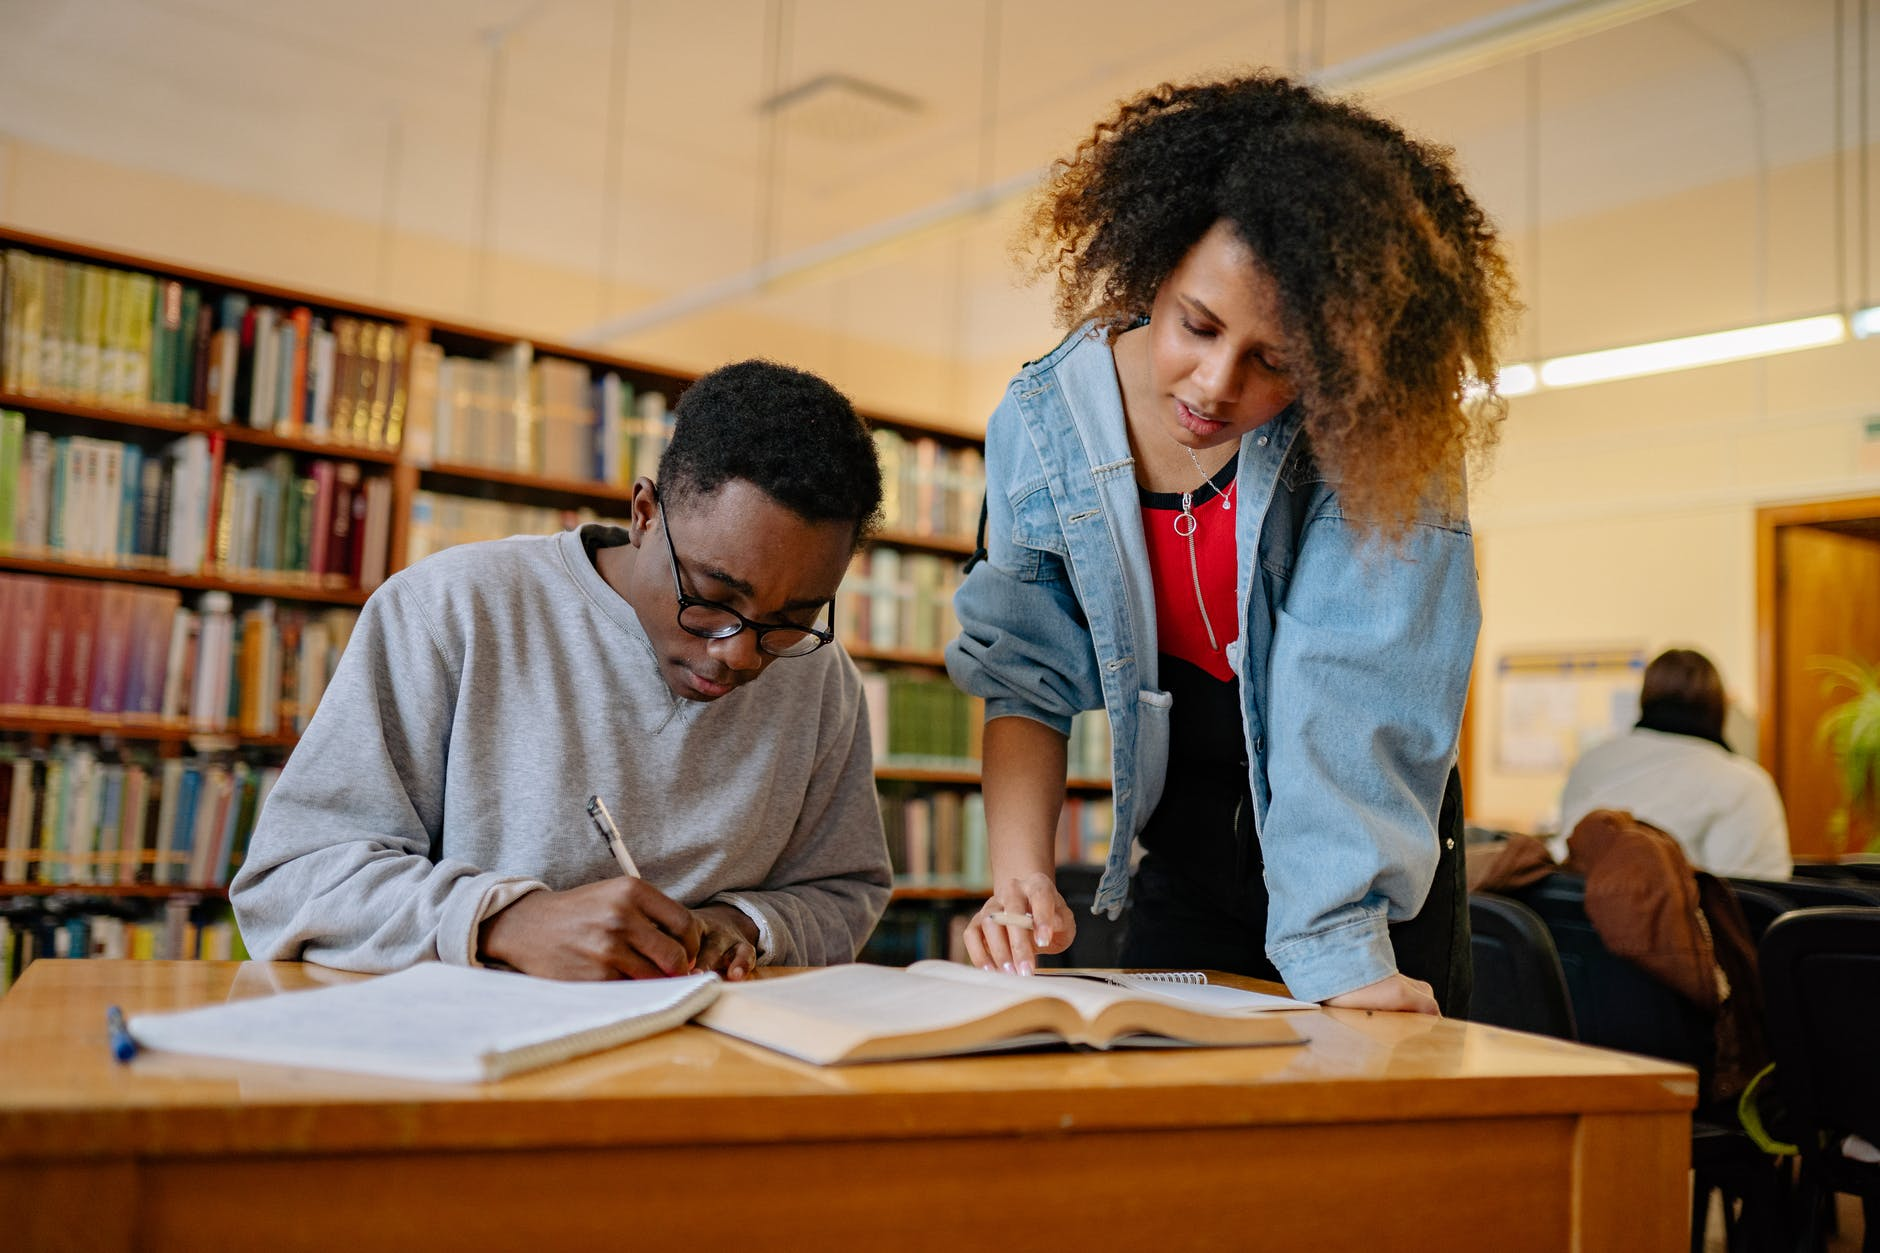 Learn How to Find the Best Business Schools 2